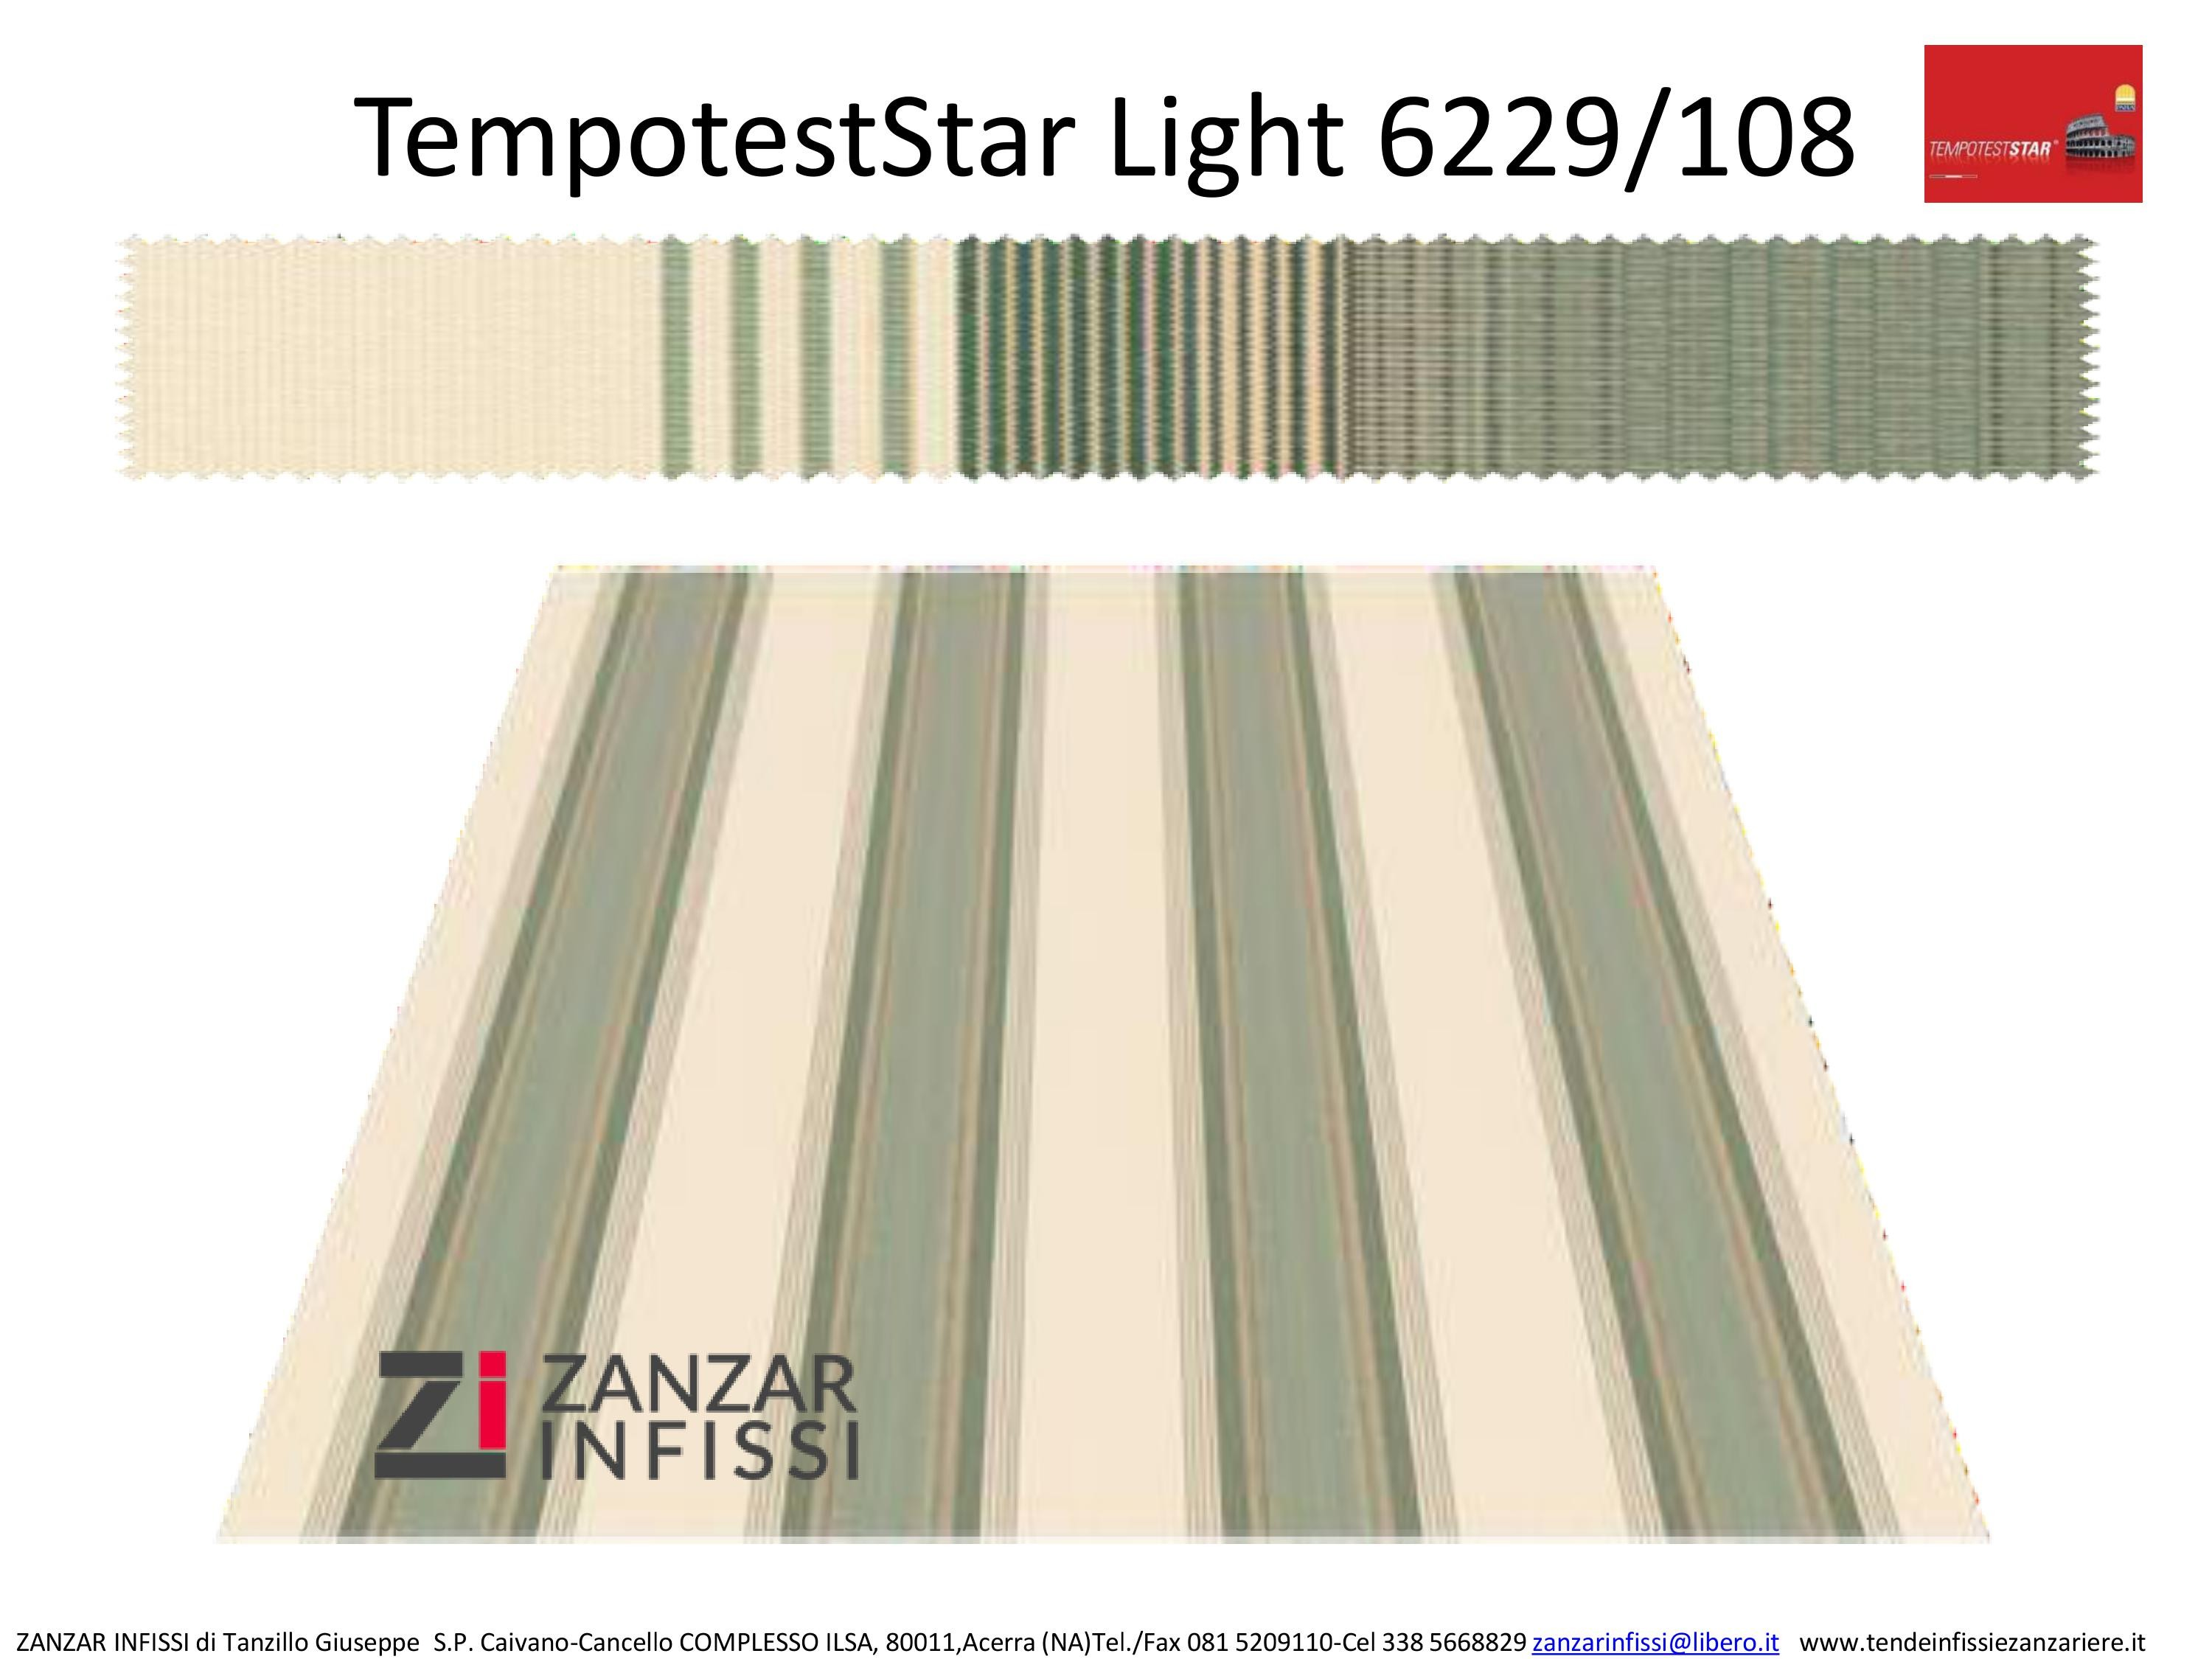 Tempotest star light 6229/108